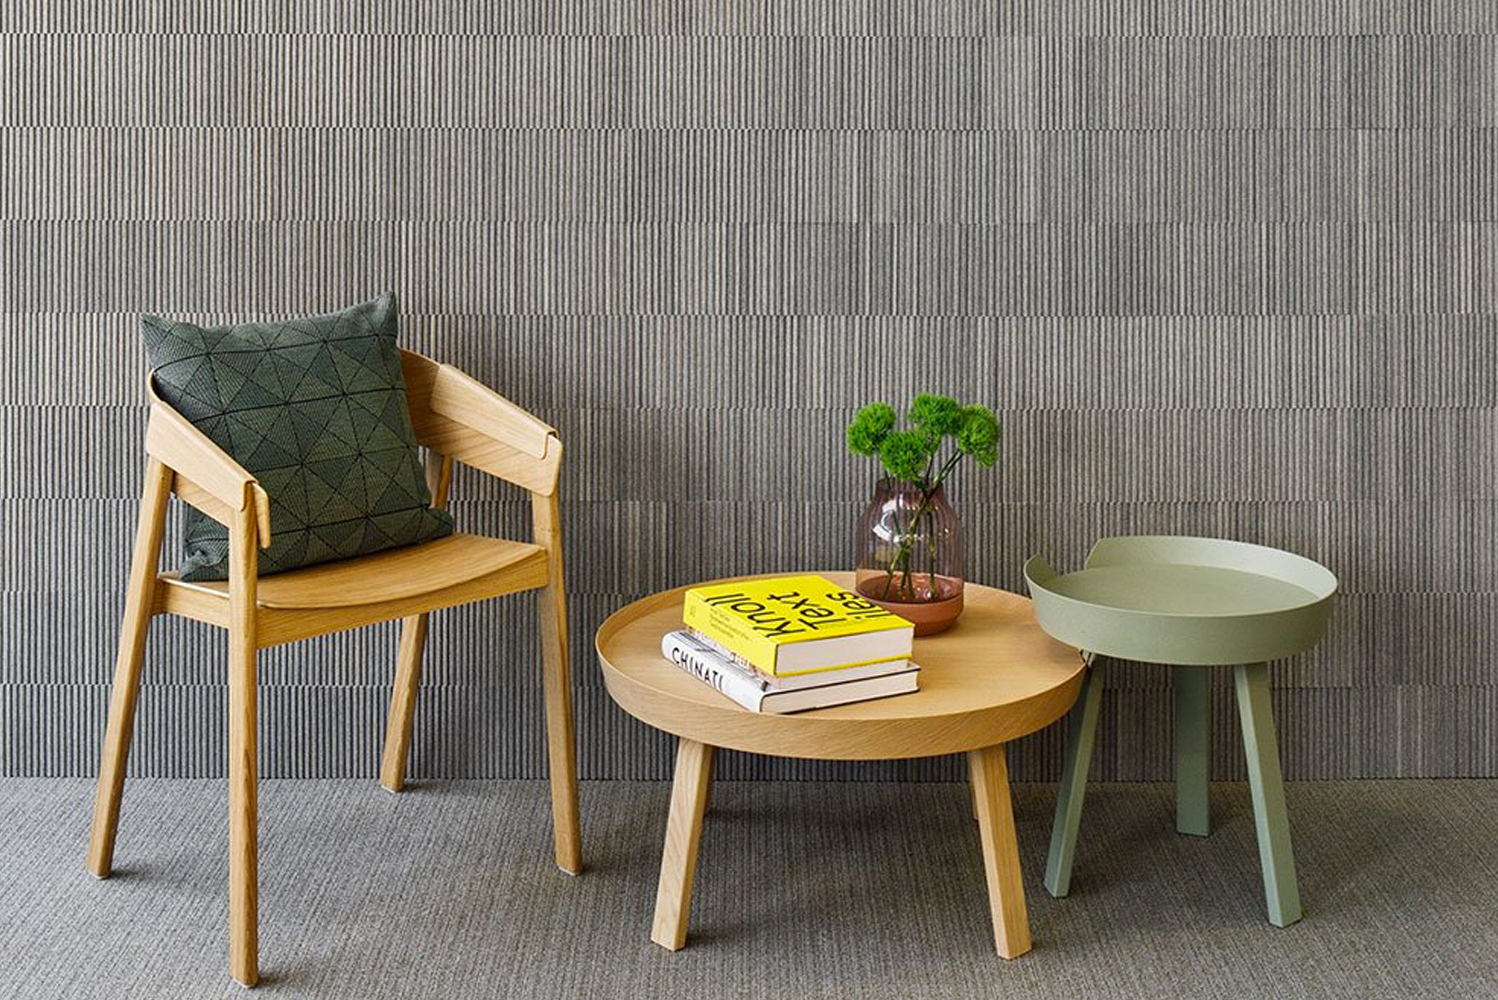 FilzFelt launched Ribsy, an acoustic tile-based system for wall-to-wall installations.